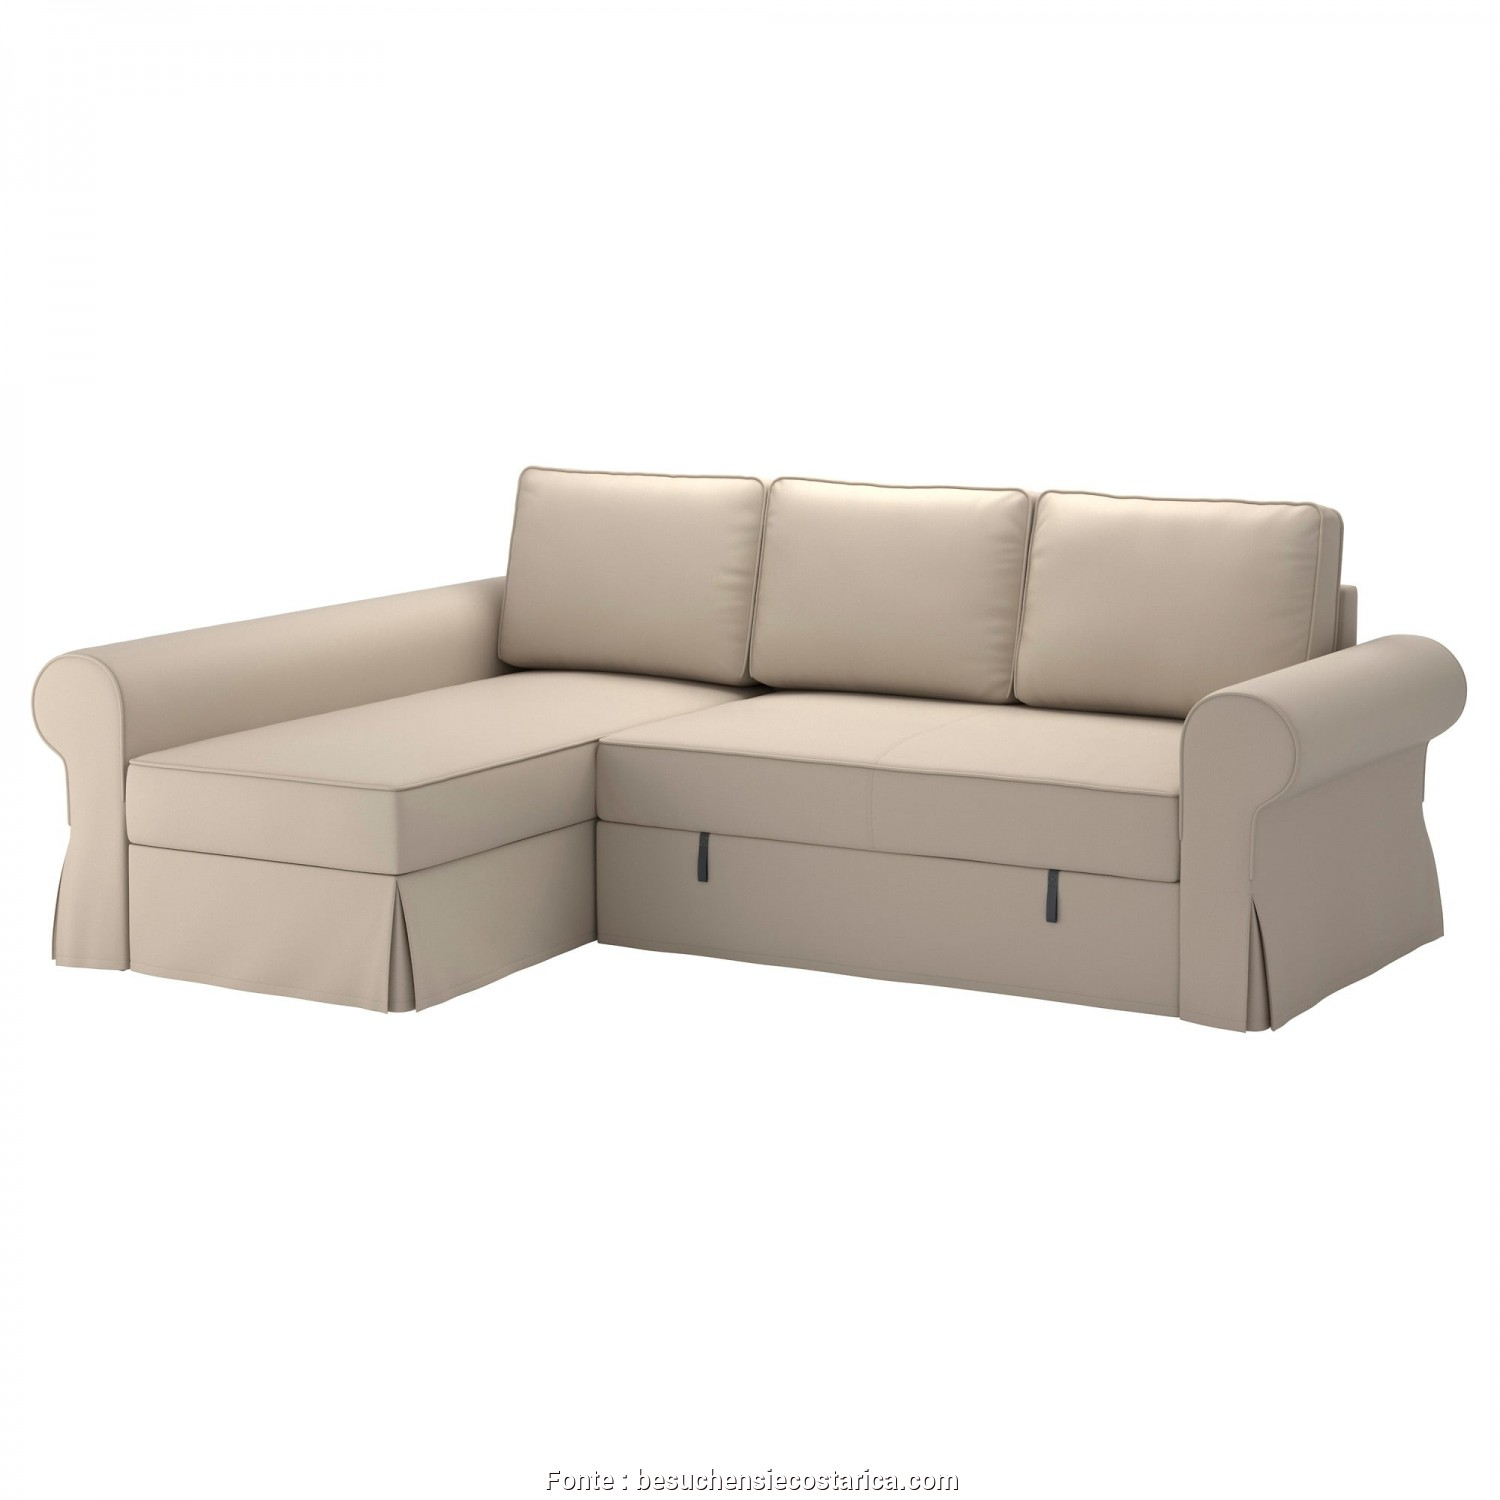 Backabro Ikea Review, Deale ... Ikea Sofabett Ehrfürchtige Fotografie Backabro Sofa, With Chaise Longue Ramna Beige Ikea